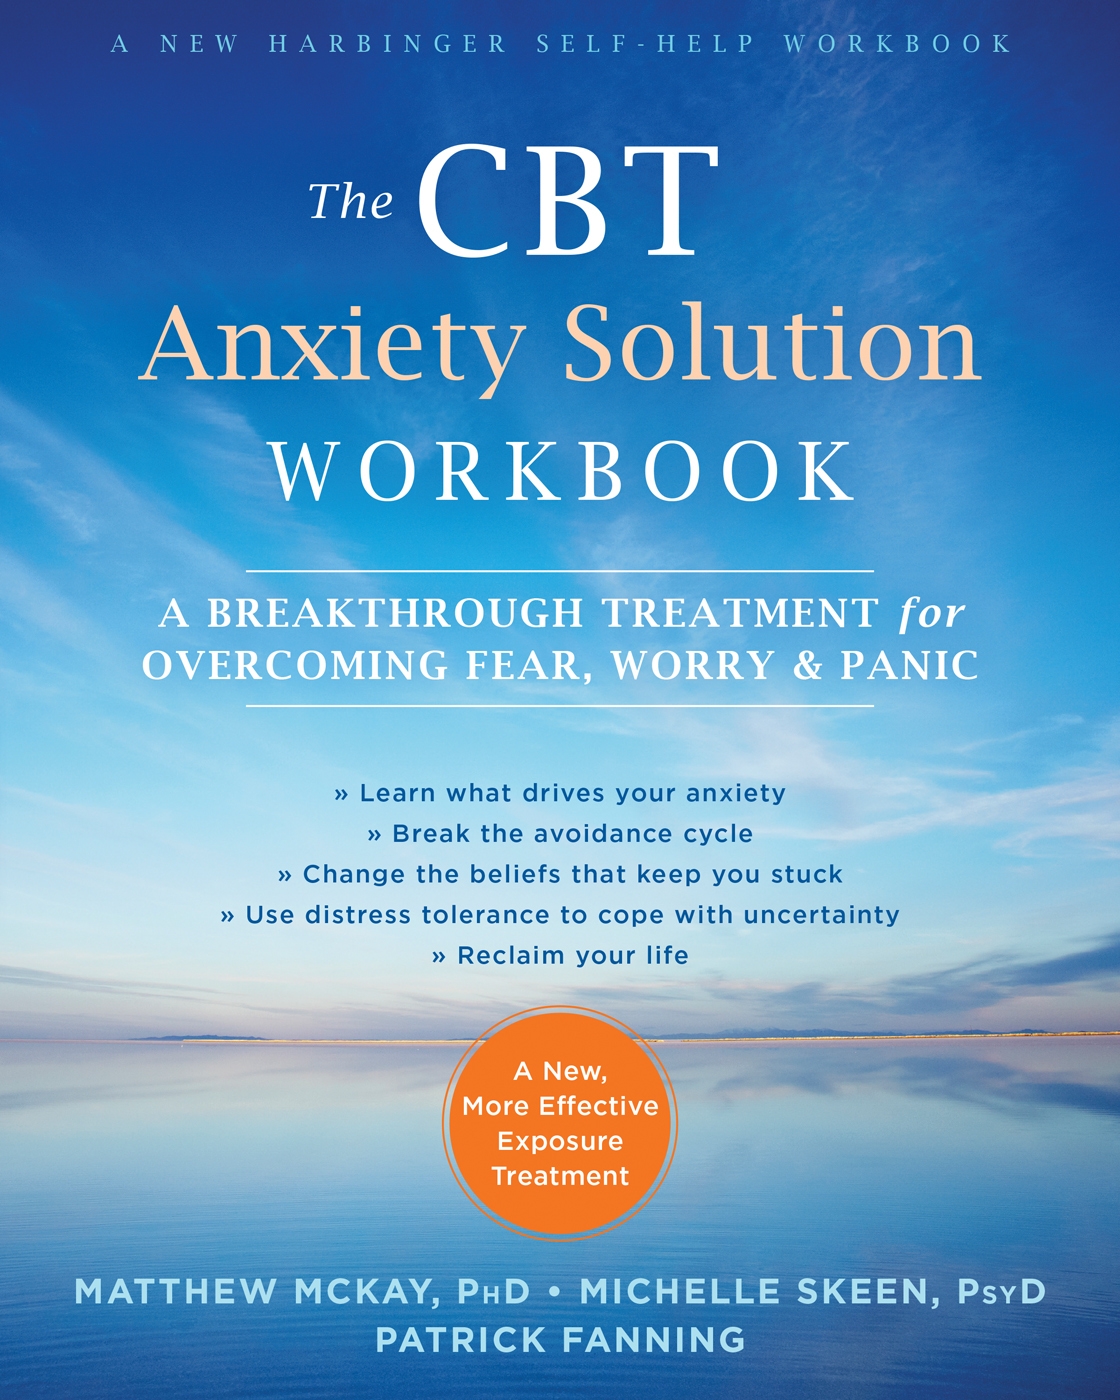 The CBT Anxiety Solution Workbook A Breakthrough Treatment for Overcoming Fear, Worry, and Panic